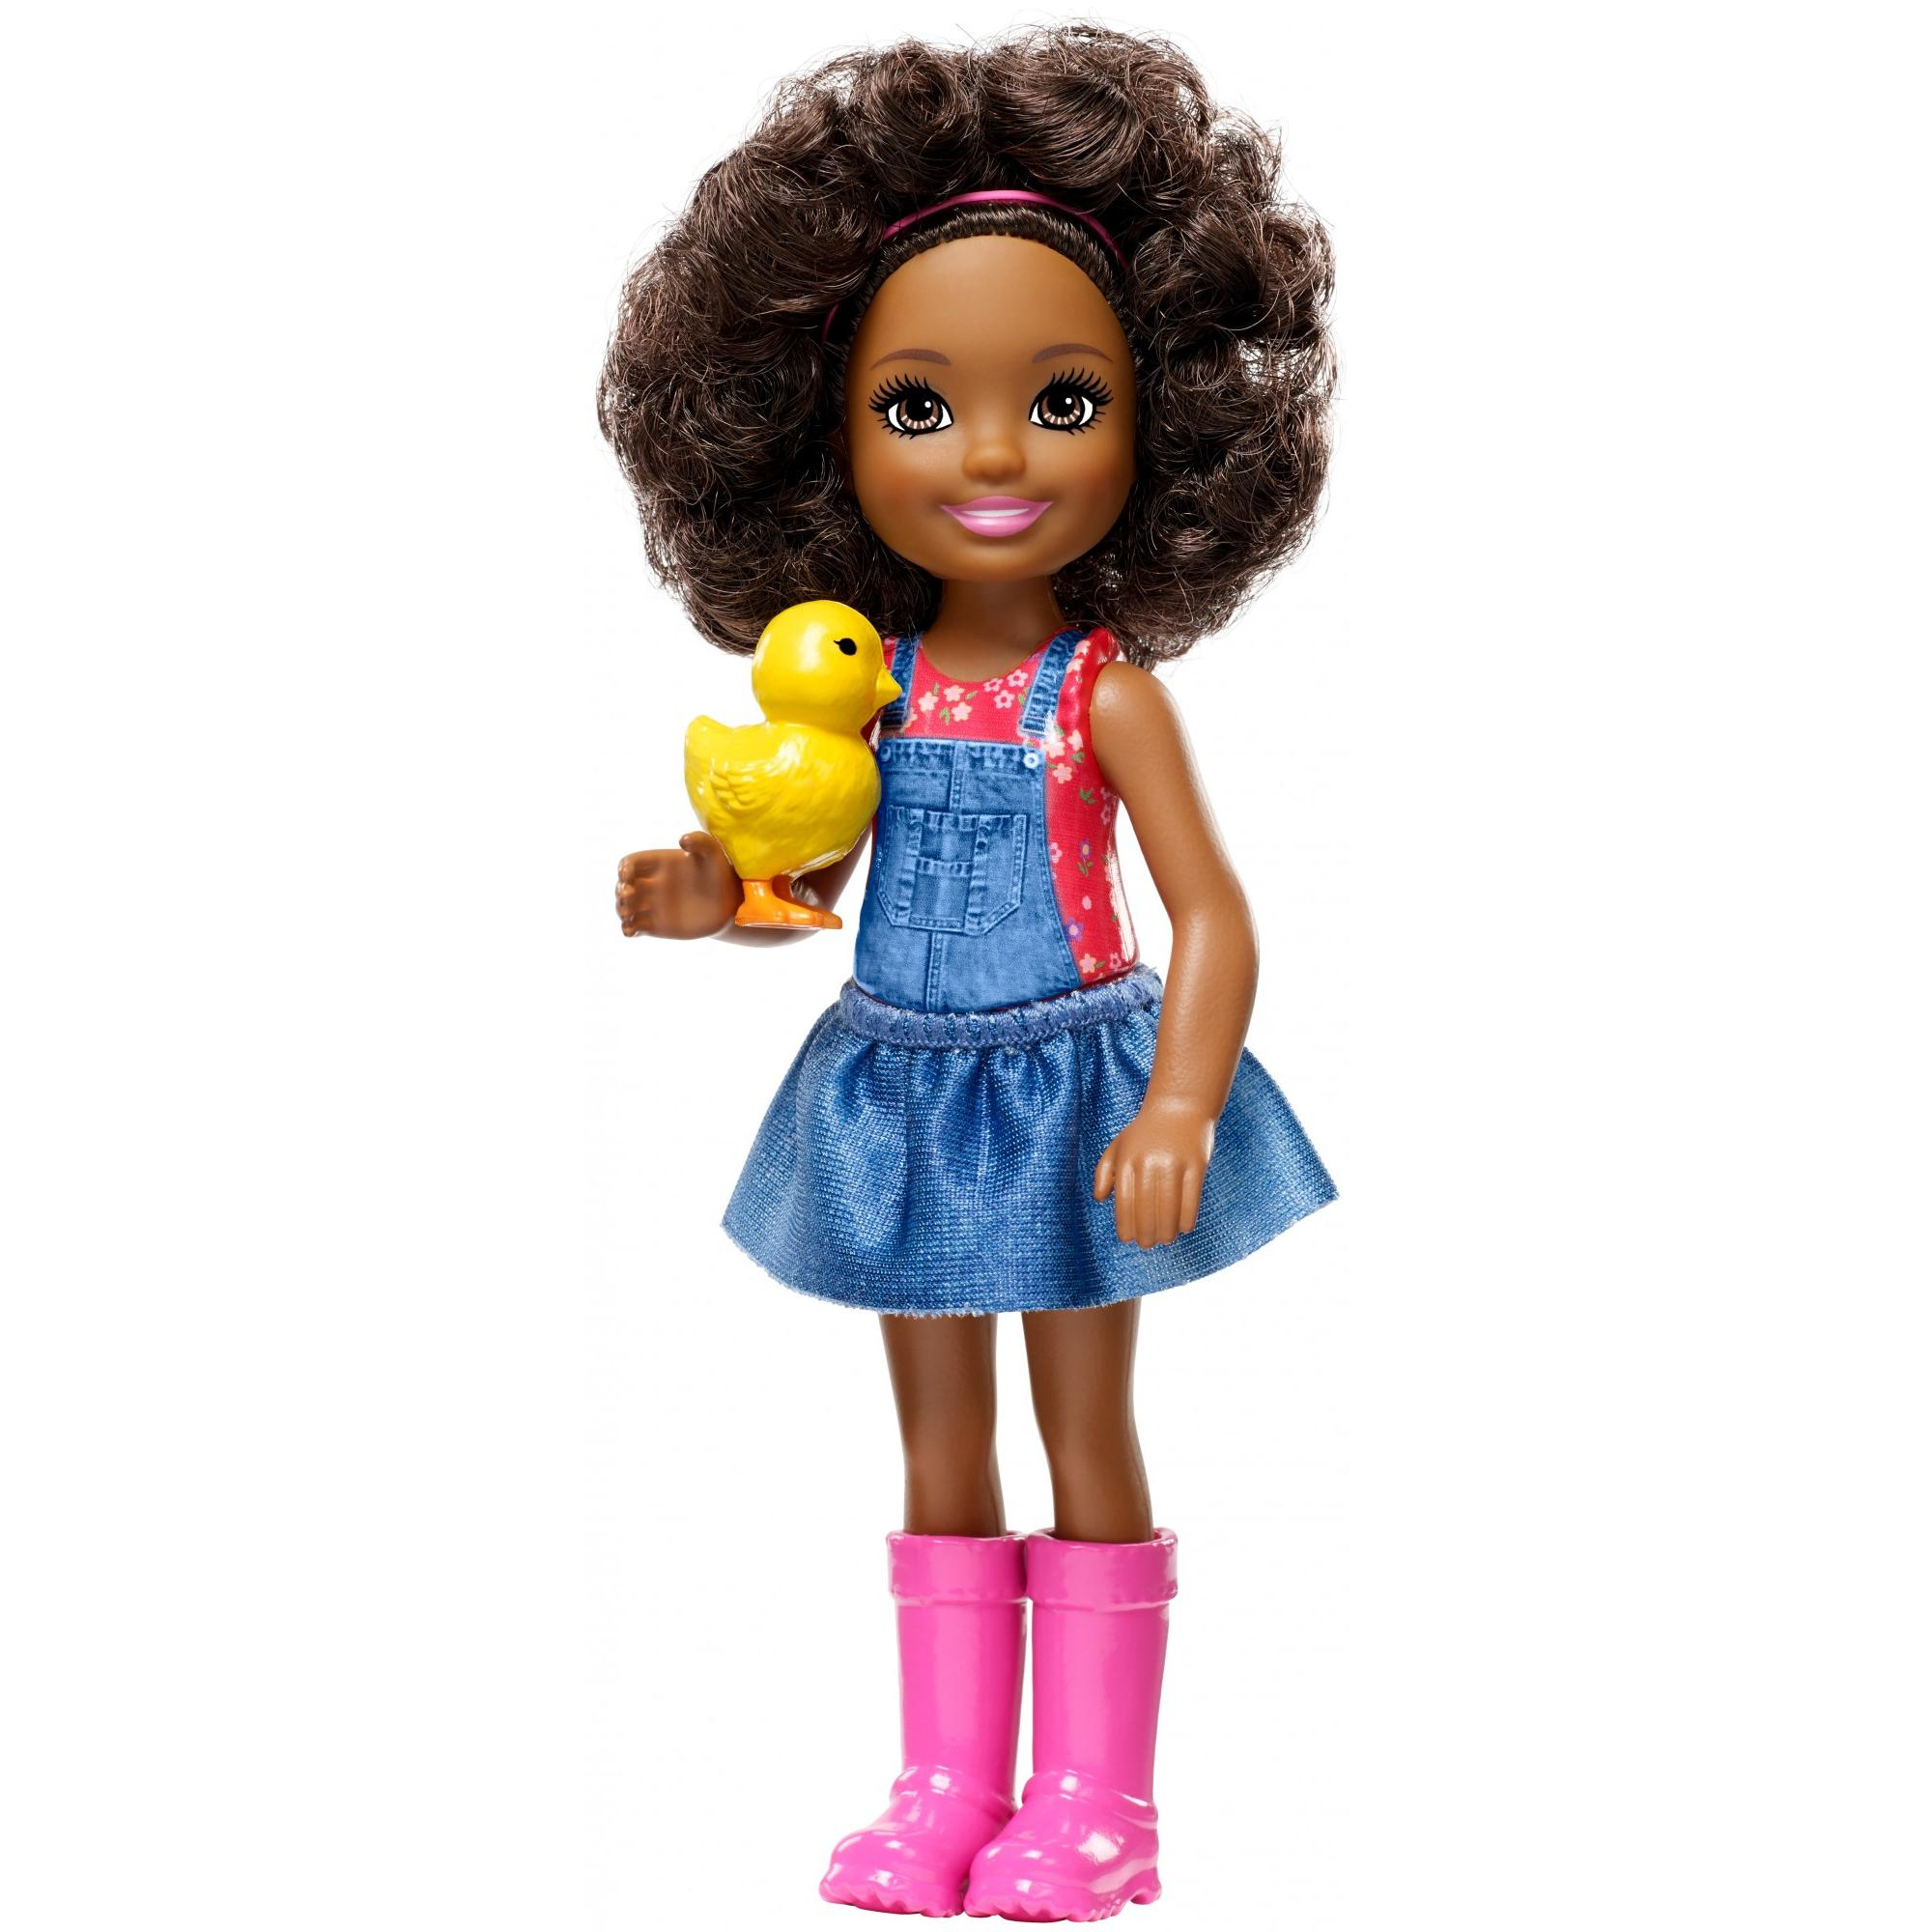 Barbie Sweet Orchard Farm Chelsea Friend Doll With Yellow Chick Walmart Com Walmart Com